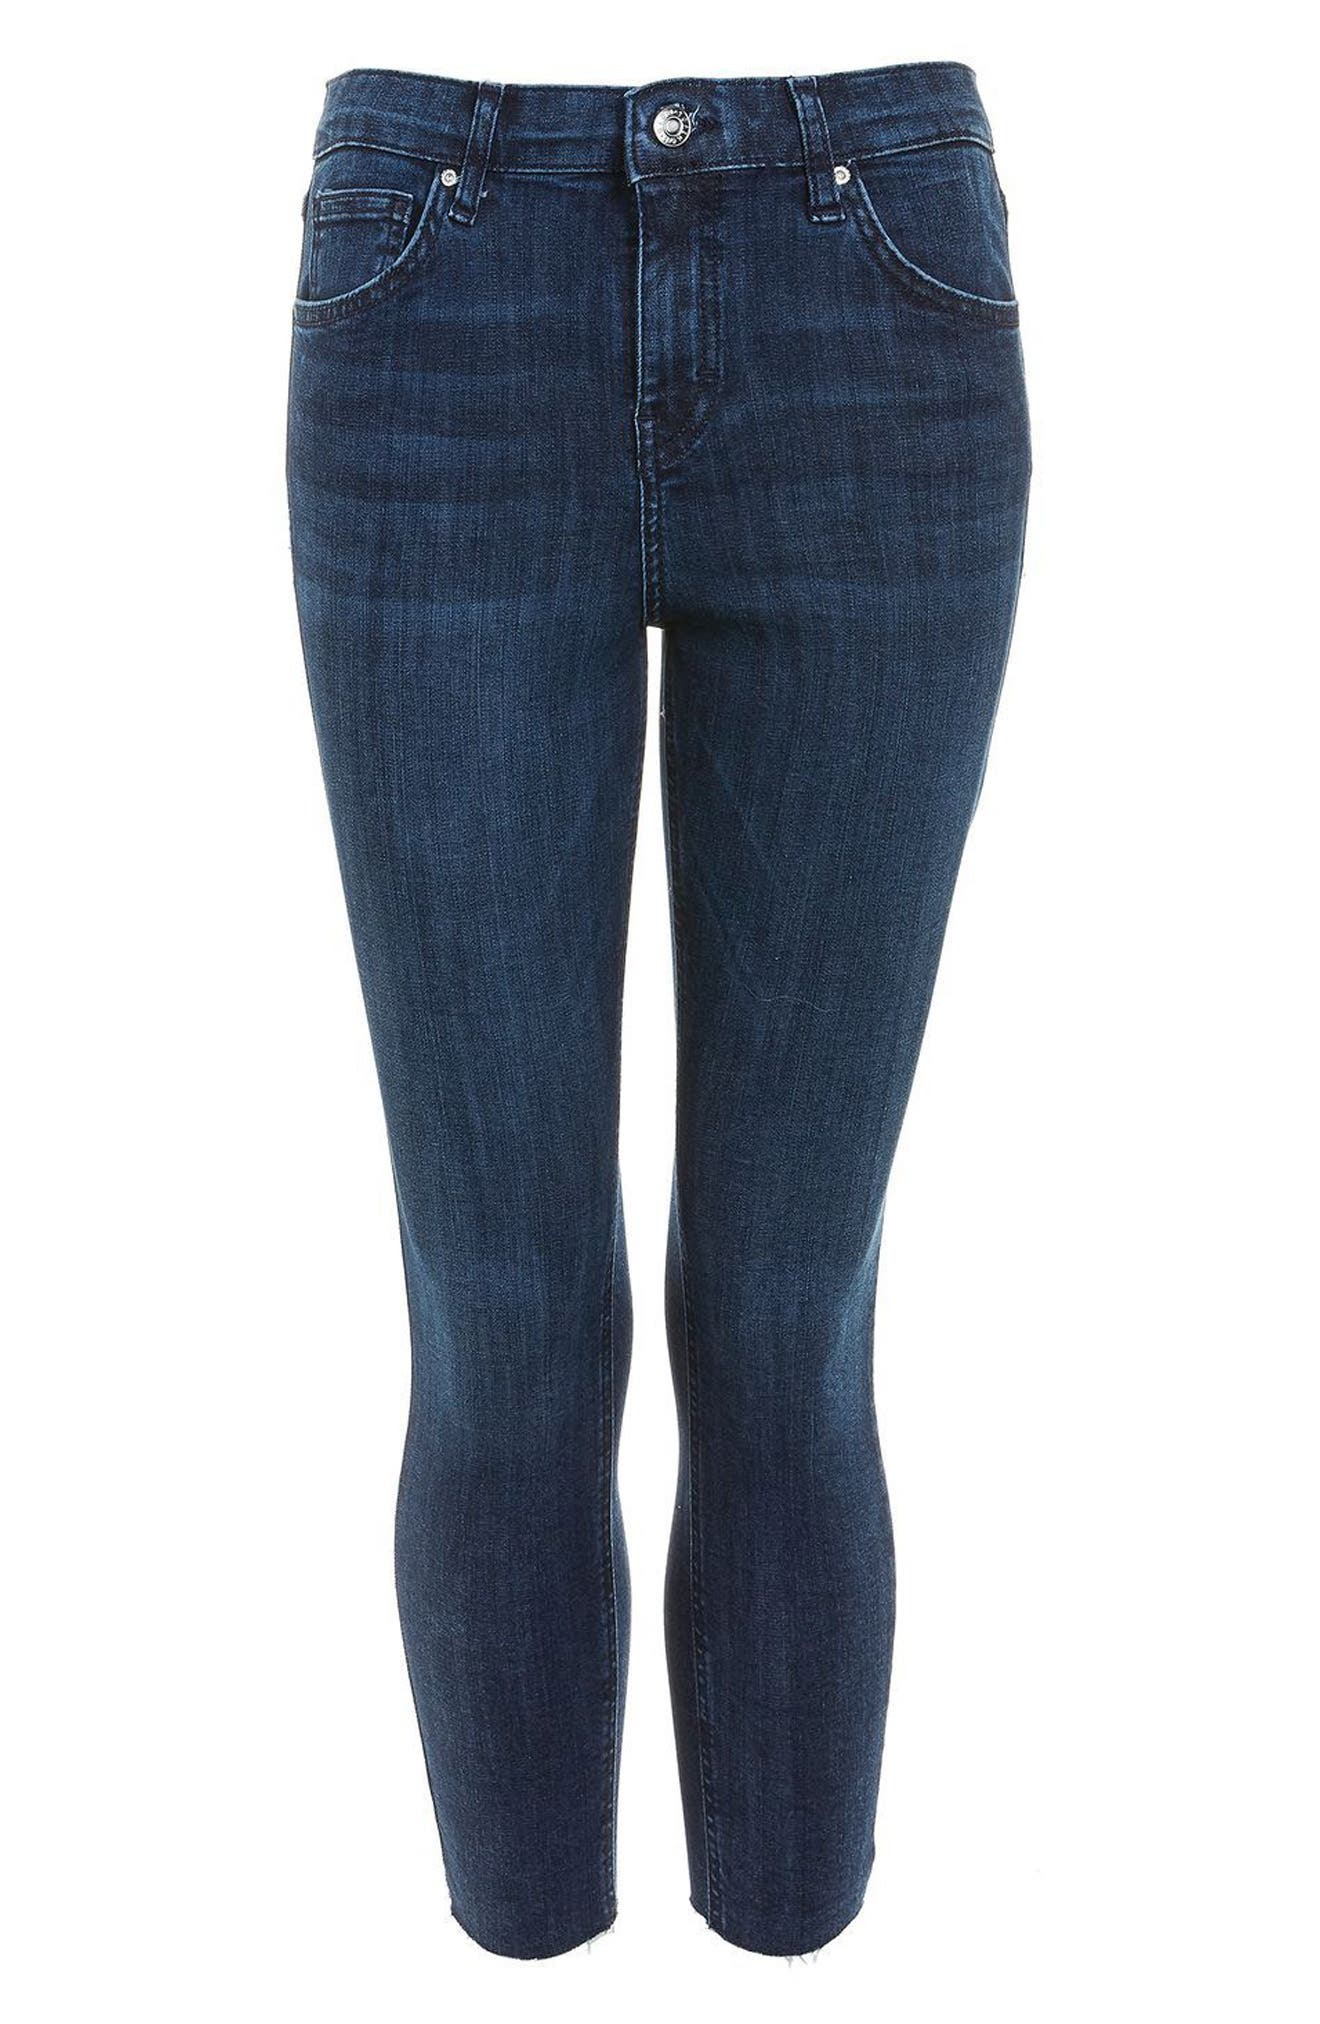 Jamie High Waist Skinny Jeans,                             Alternate thumbnail 3, color,                             Mid Denim